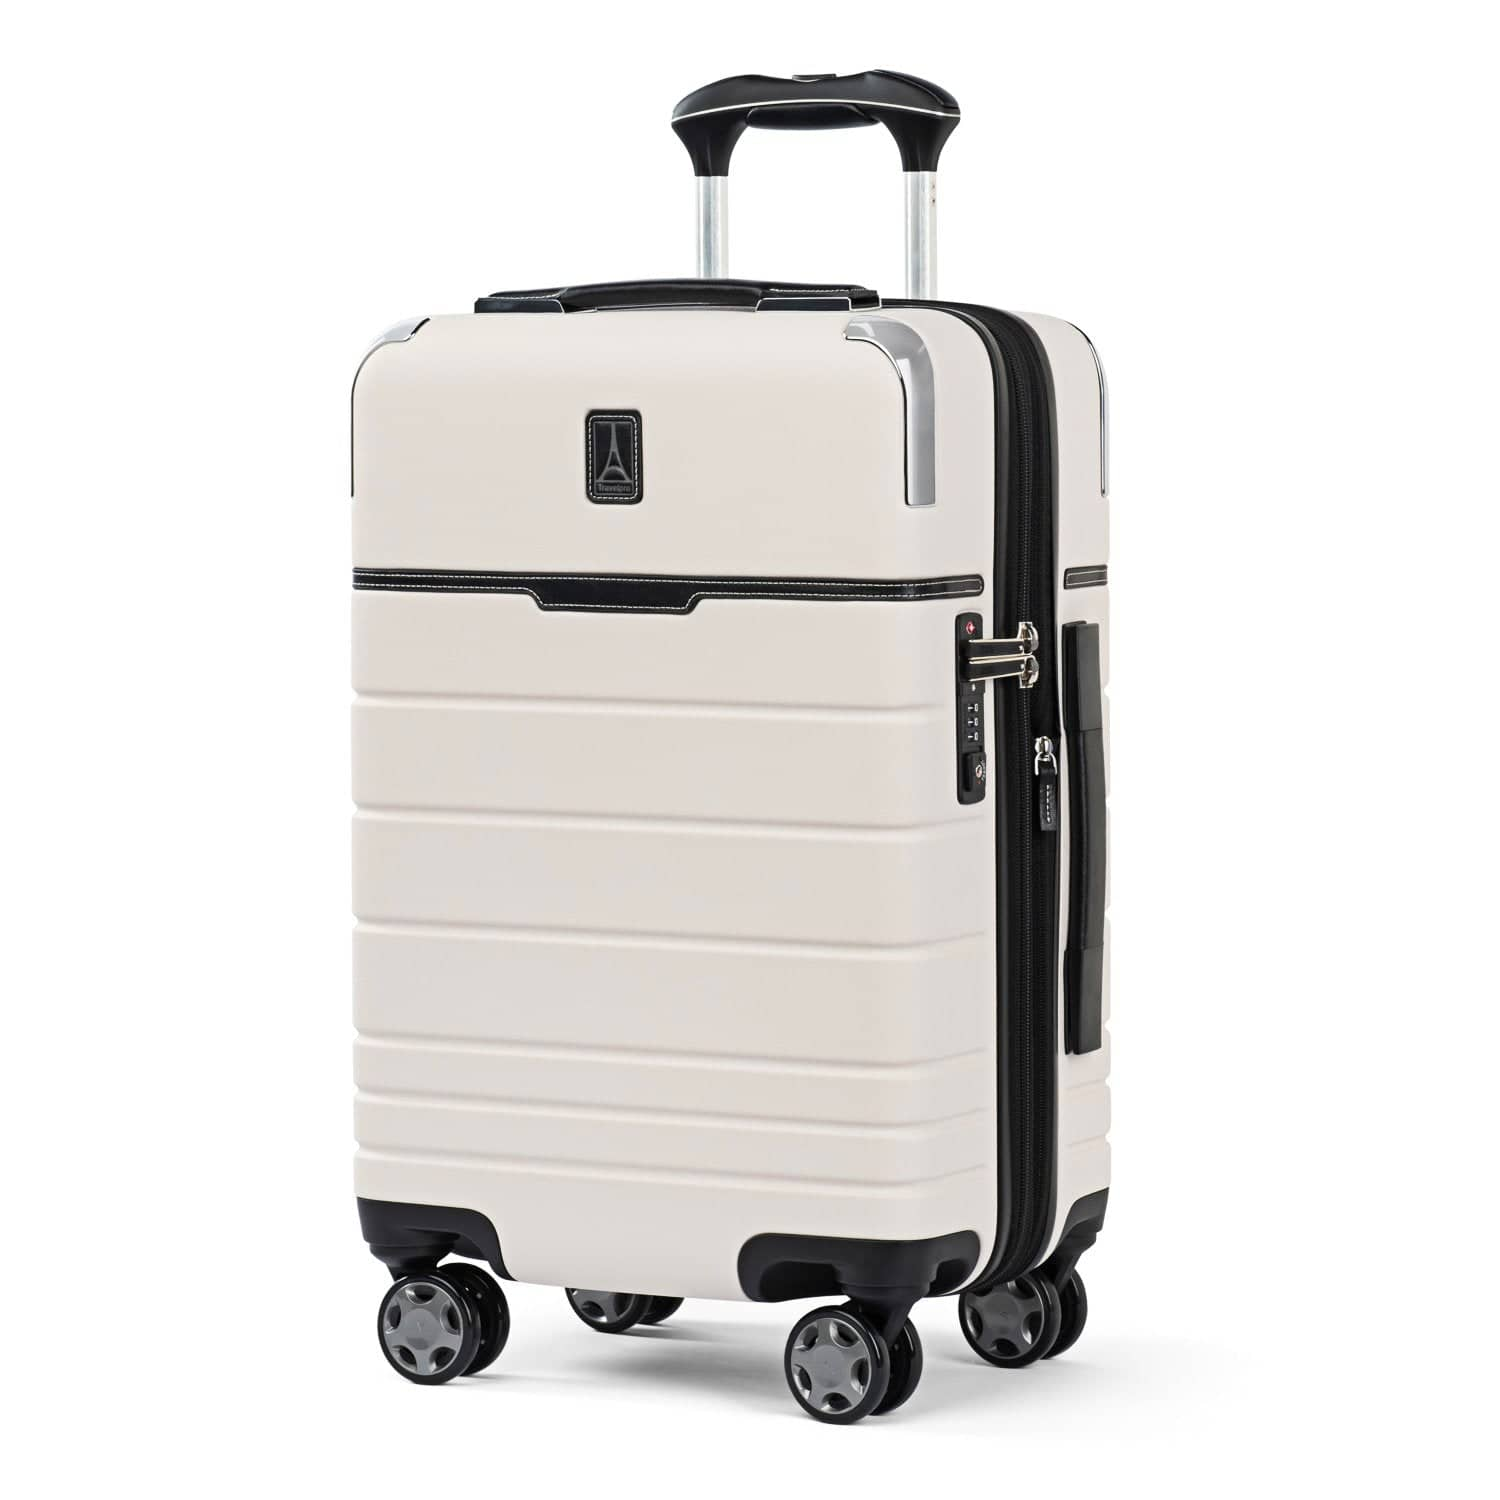 Travelpro x Travel + Leisure Carry-On